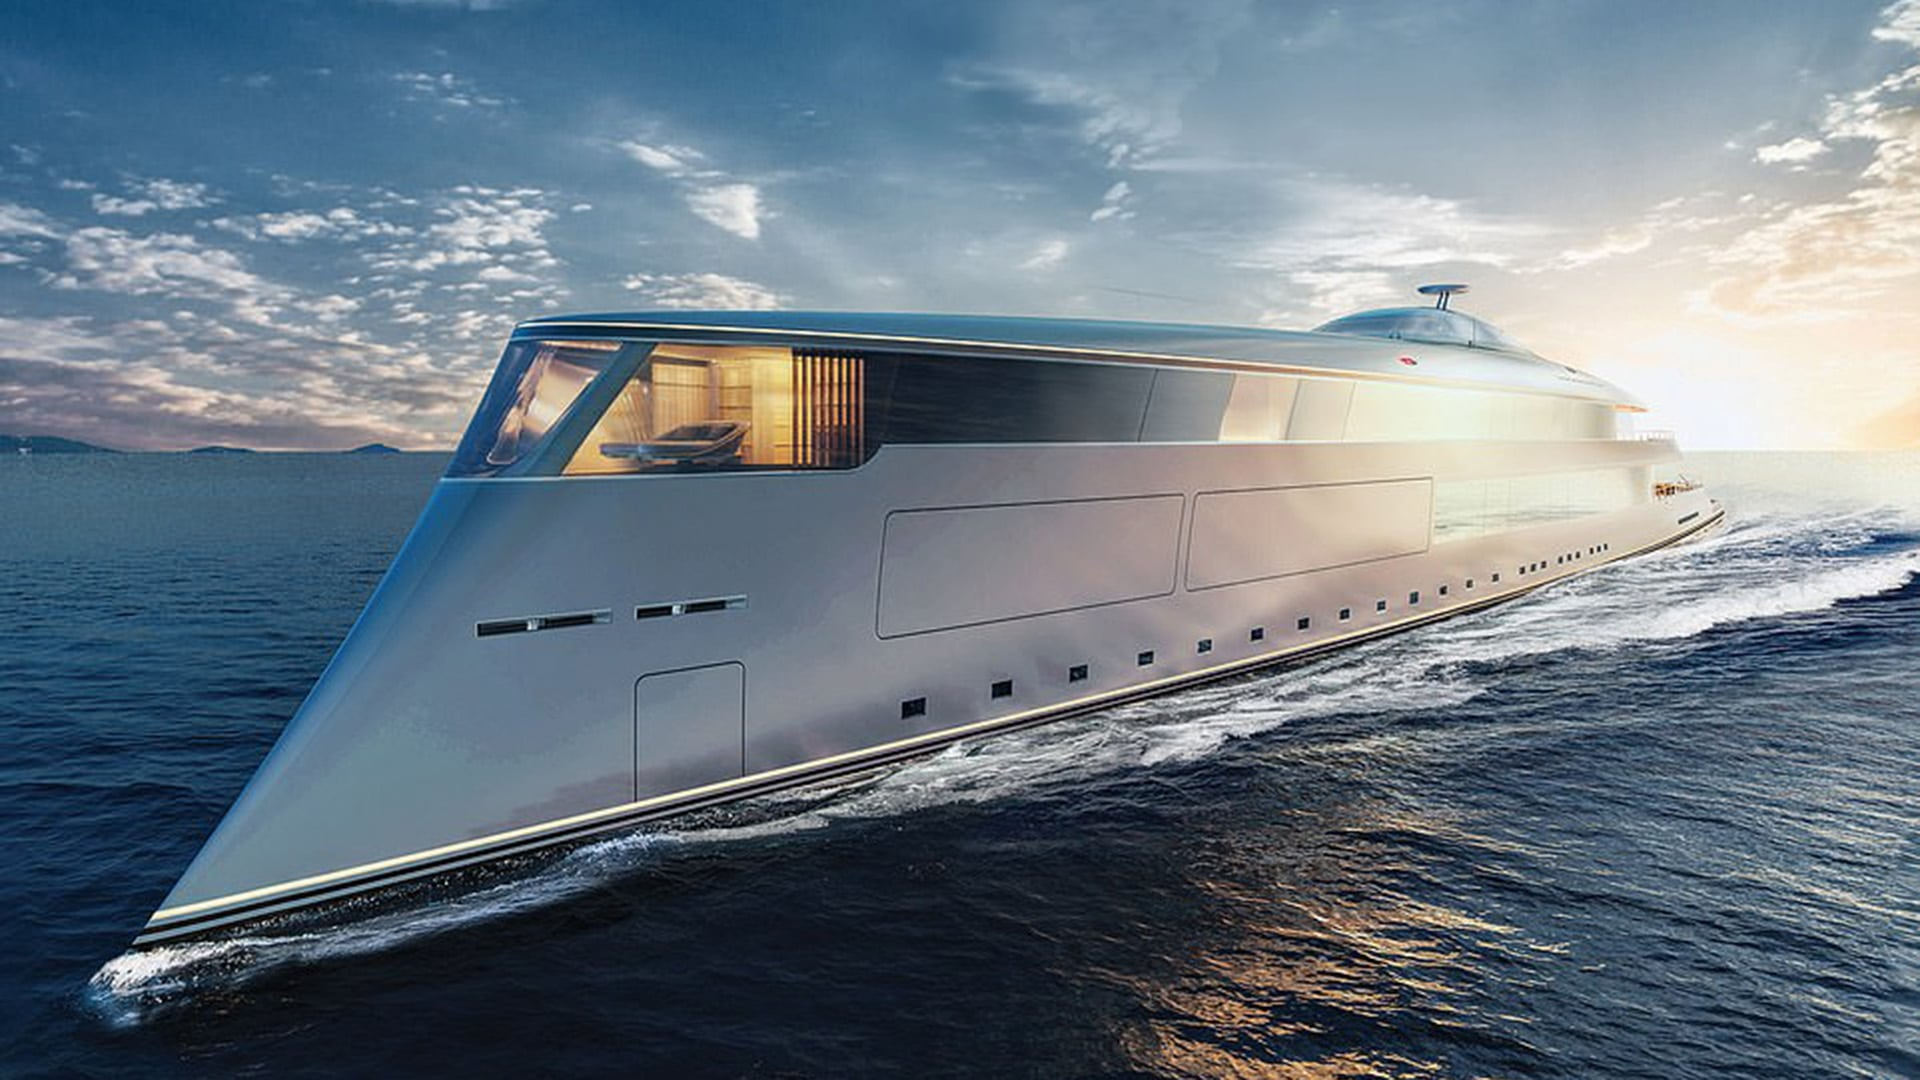 Aqua, The Magnificent Hydrogen-Powered Superyacht Of The Future